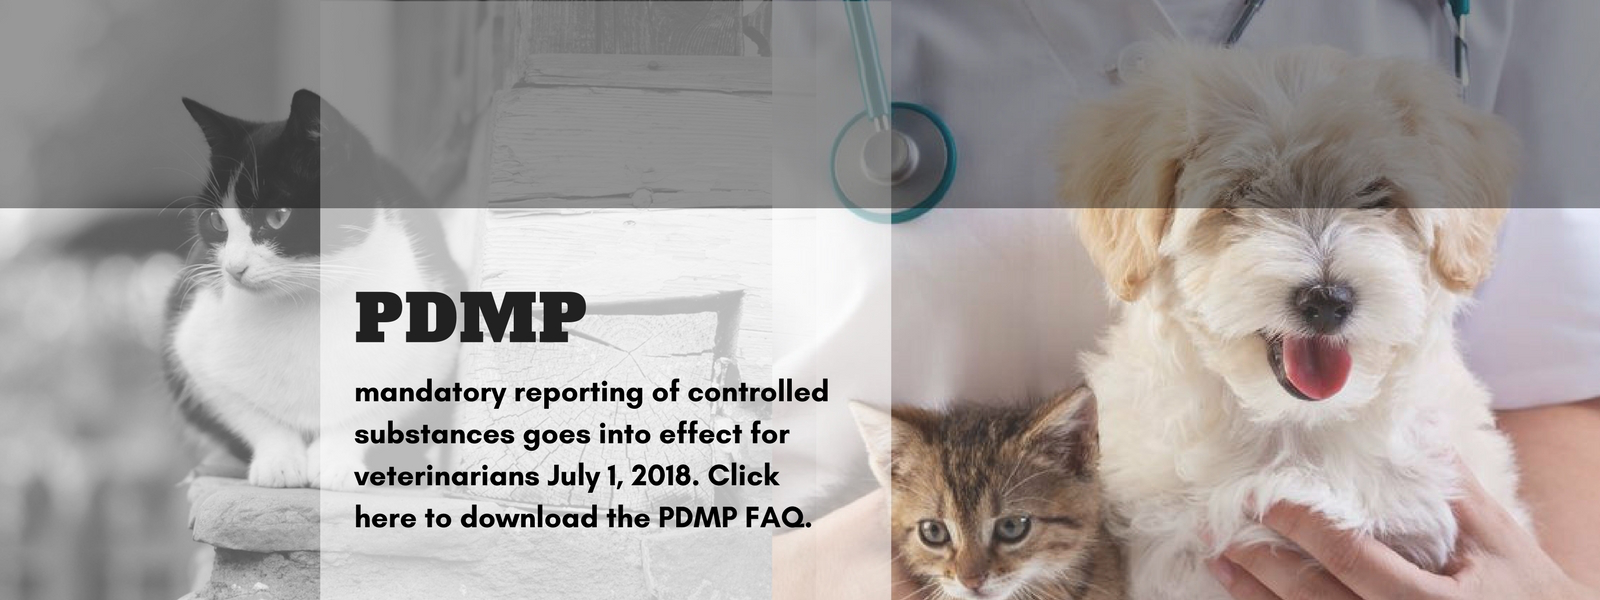 Click to view and download the FAQ about the PDMP.